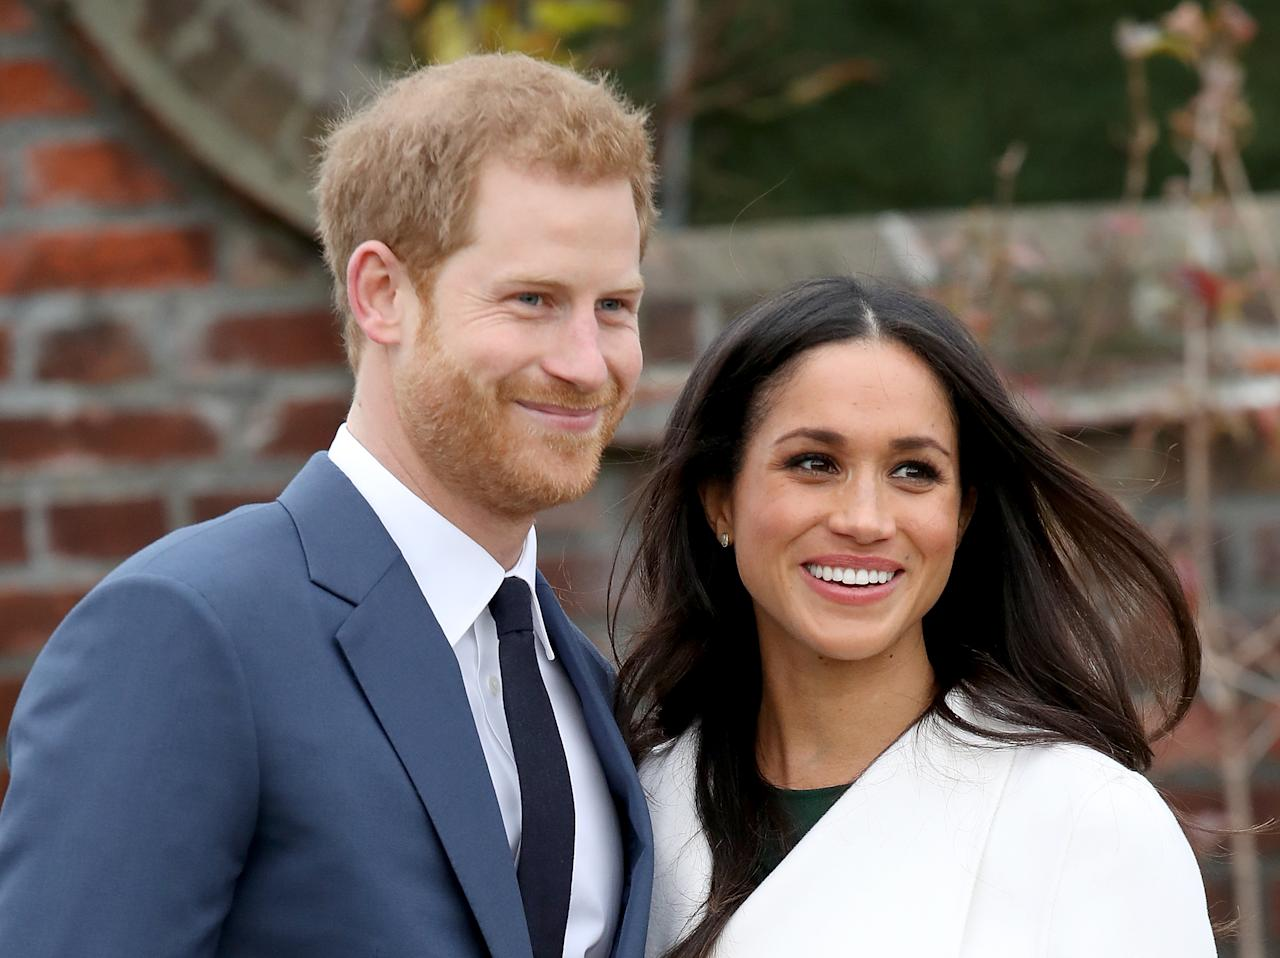 """<p>The pair have the blessing of Harry's father, Prince Charles. """"We're thrilled. We're both thrilled,"""" he and wife Camilla said in a <a rel=""""nofollow"""" href=""""https://twitter.com/ClarenceHouse/status/935122095801012224"""">statement</a>. """"We hope they'll be very happy indeed."""" Same for Meghan's parents, Doria Radlan and Thomas Markle, who split when the actress was a young girl. """"We are incredibly happy for Meghan and Harry,"""" they said in their own <a rel=""""nofollow"""" href=""""https://twitter.com/KensingtonRoyal/status/935088438243622912"""">statement</a>. """"Our daughter has always been a kind and loving person. To see her union with Harry, who shares the same qualities, is a source of great joy for us as parents."""" (Photo: Chris Jackson/Getty Images) </p>"""